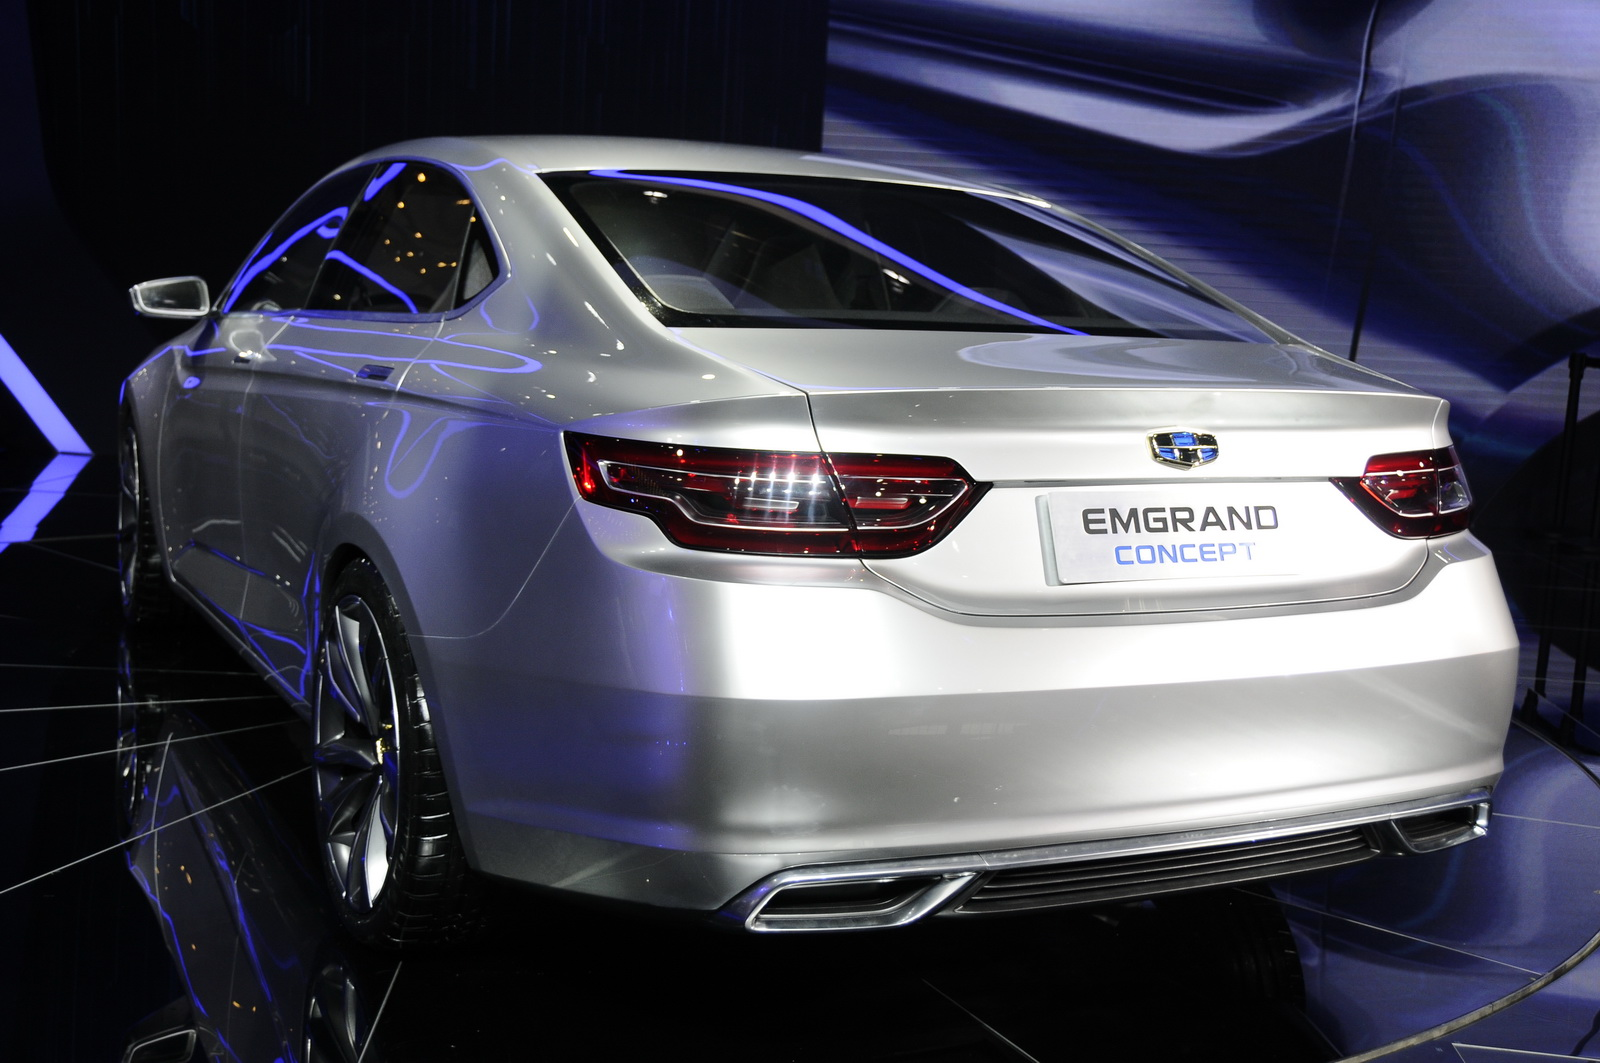 What Do You Think About Geely's Emgrand Concept?